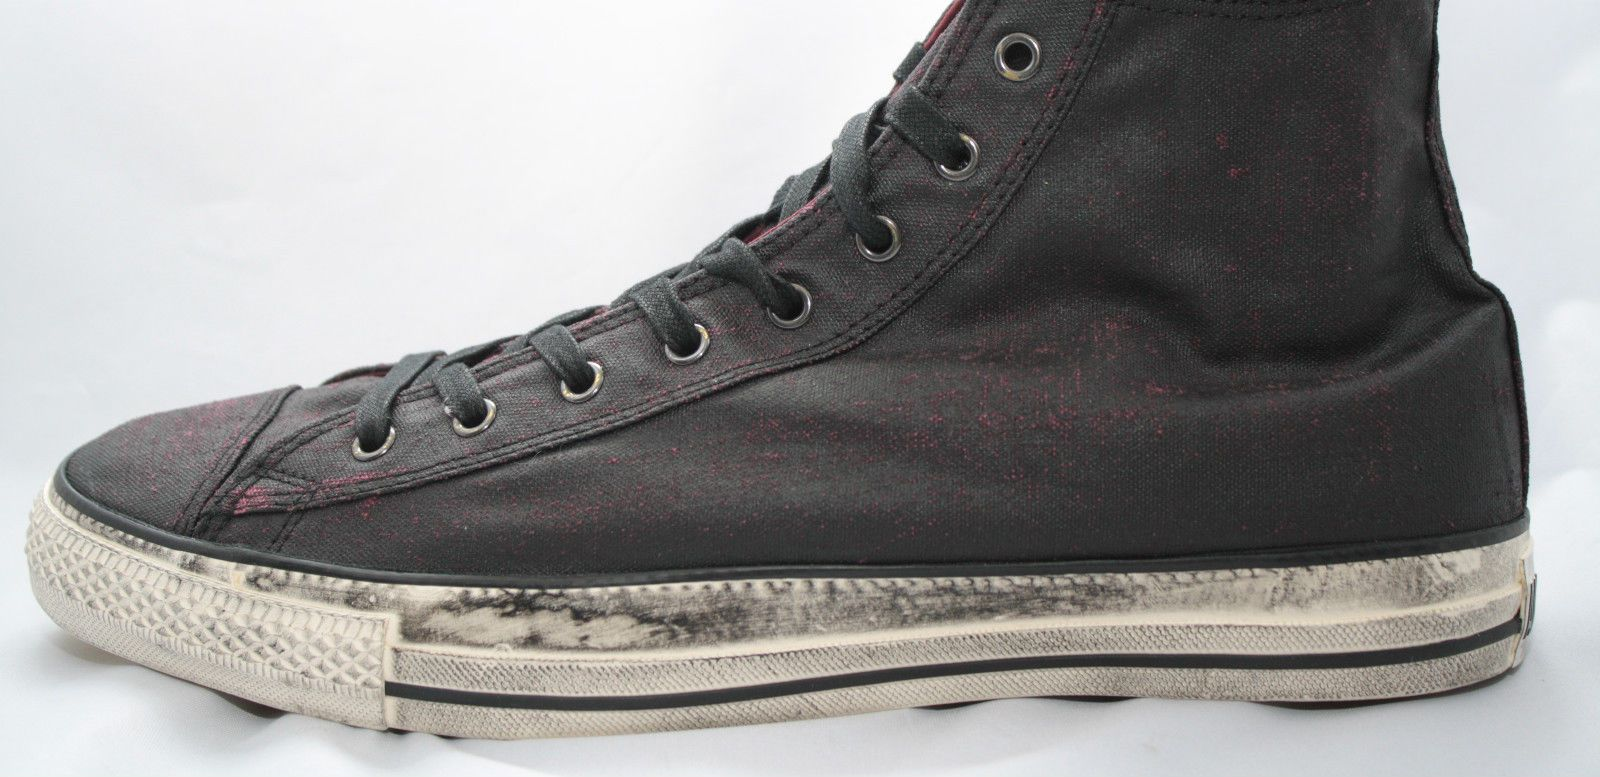 cb8a90268f80 Mens Converse Chuck Taylor John Varvatos All Star Black Burgundy RARE  Painted Hi